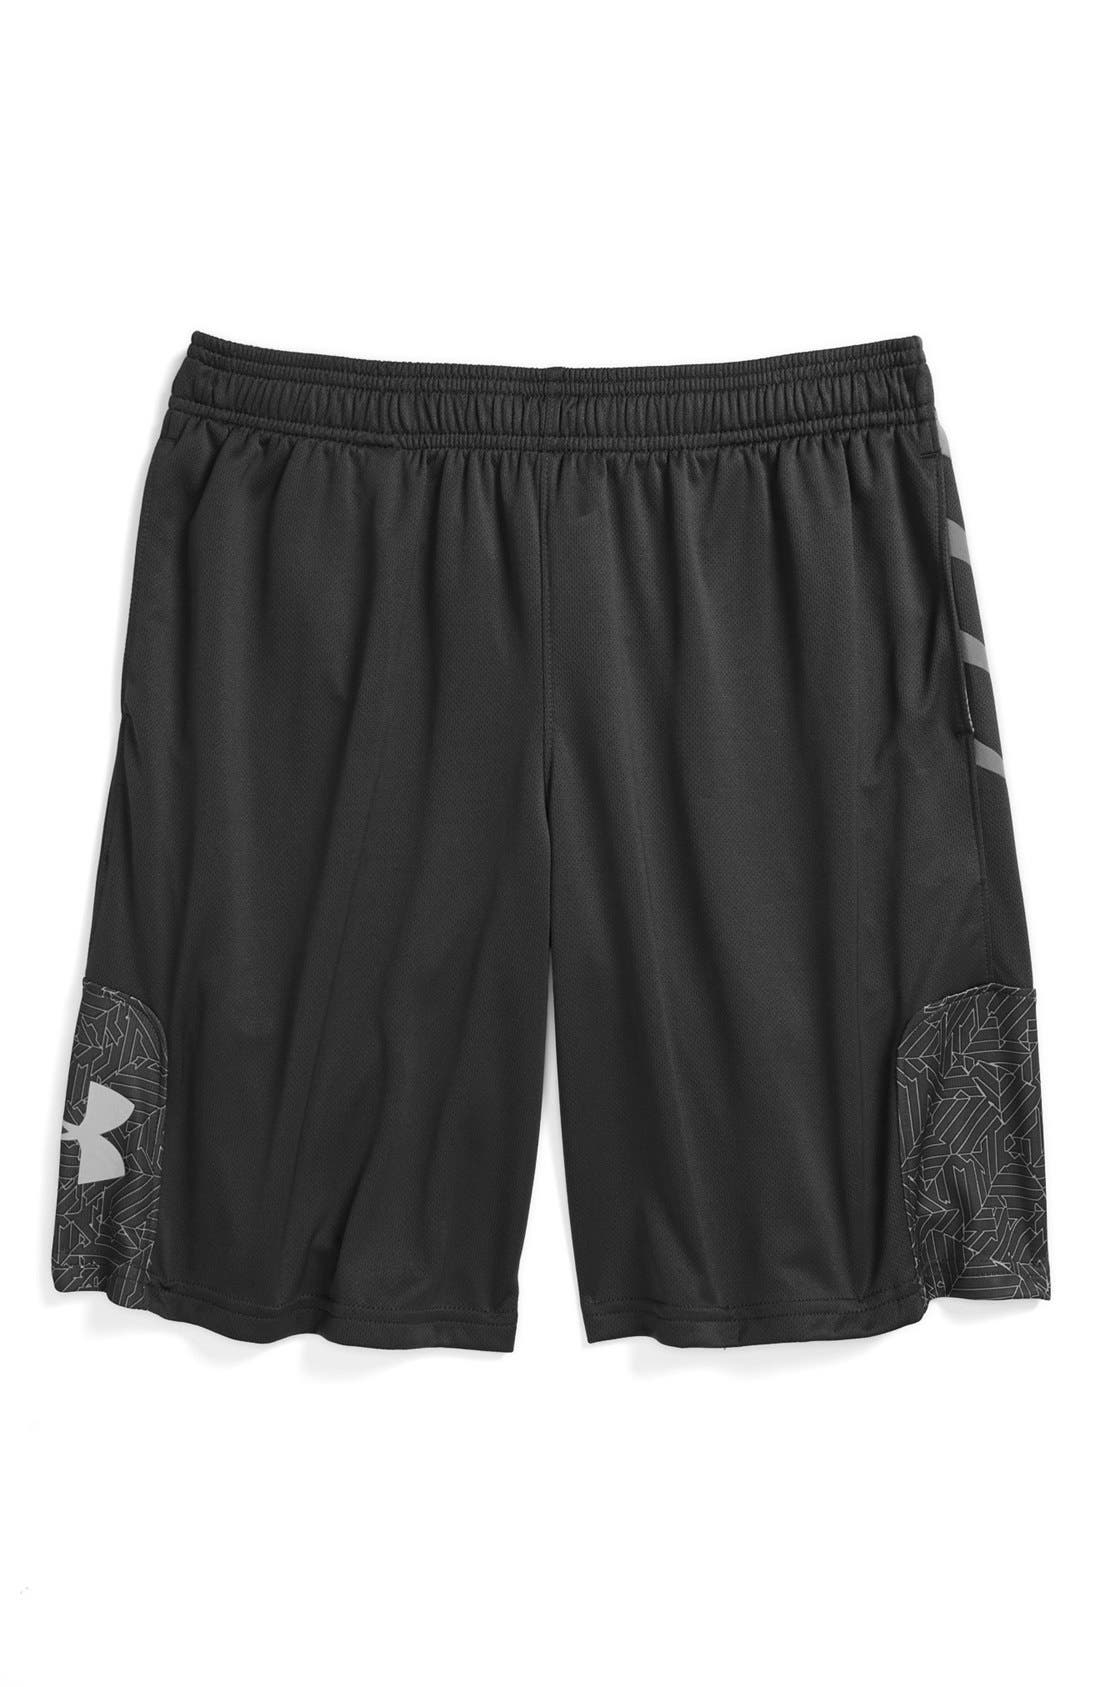 Alternate Image 1 Selected - Under Armour 'Watch Out' Shorts (Big Boys)